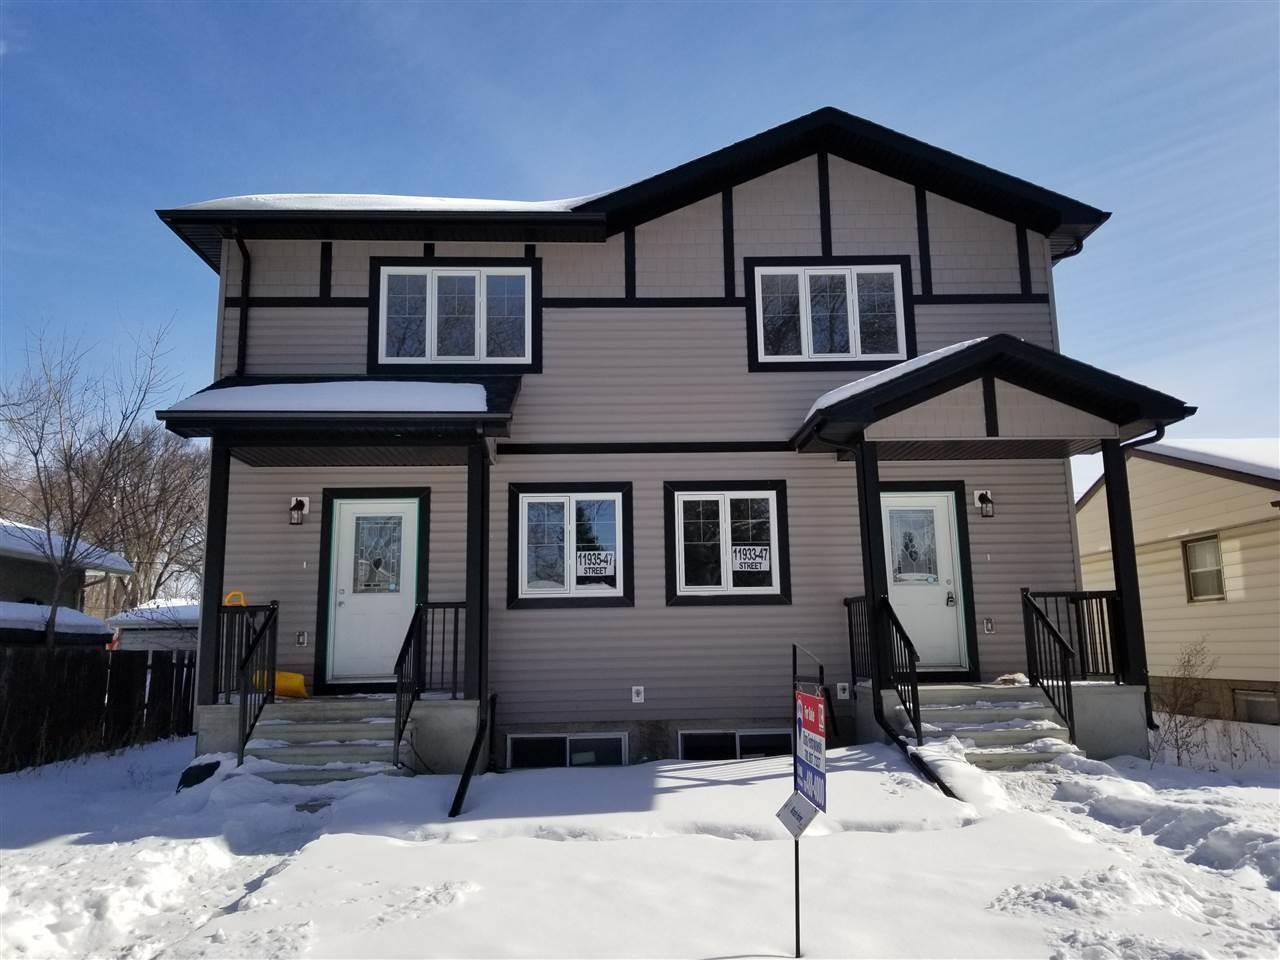 Townhouse for sale at 11933 47 St Nw Edmonton Alberta - MLS: E4185445